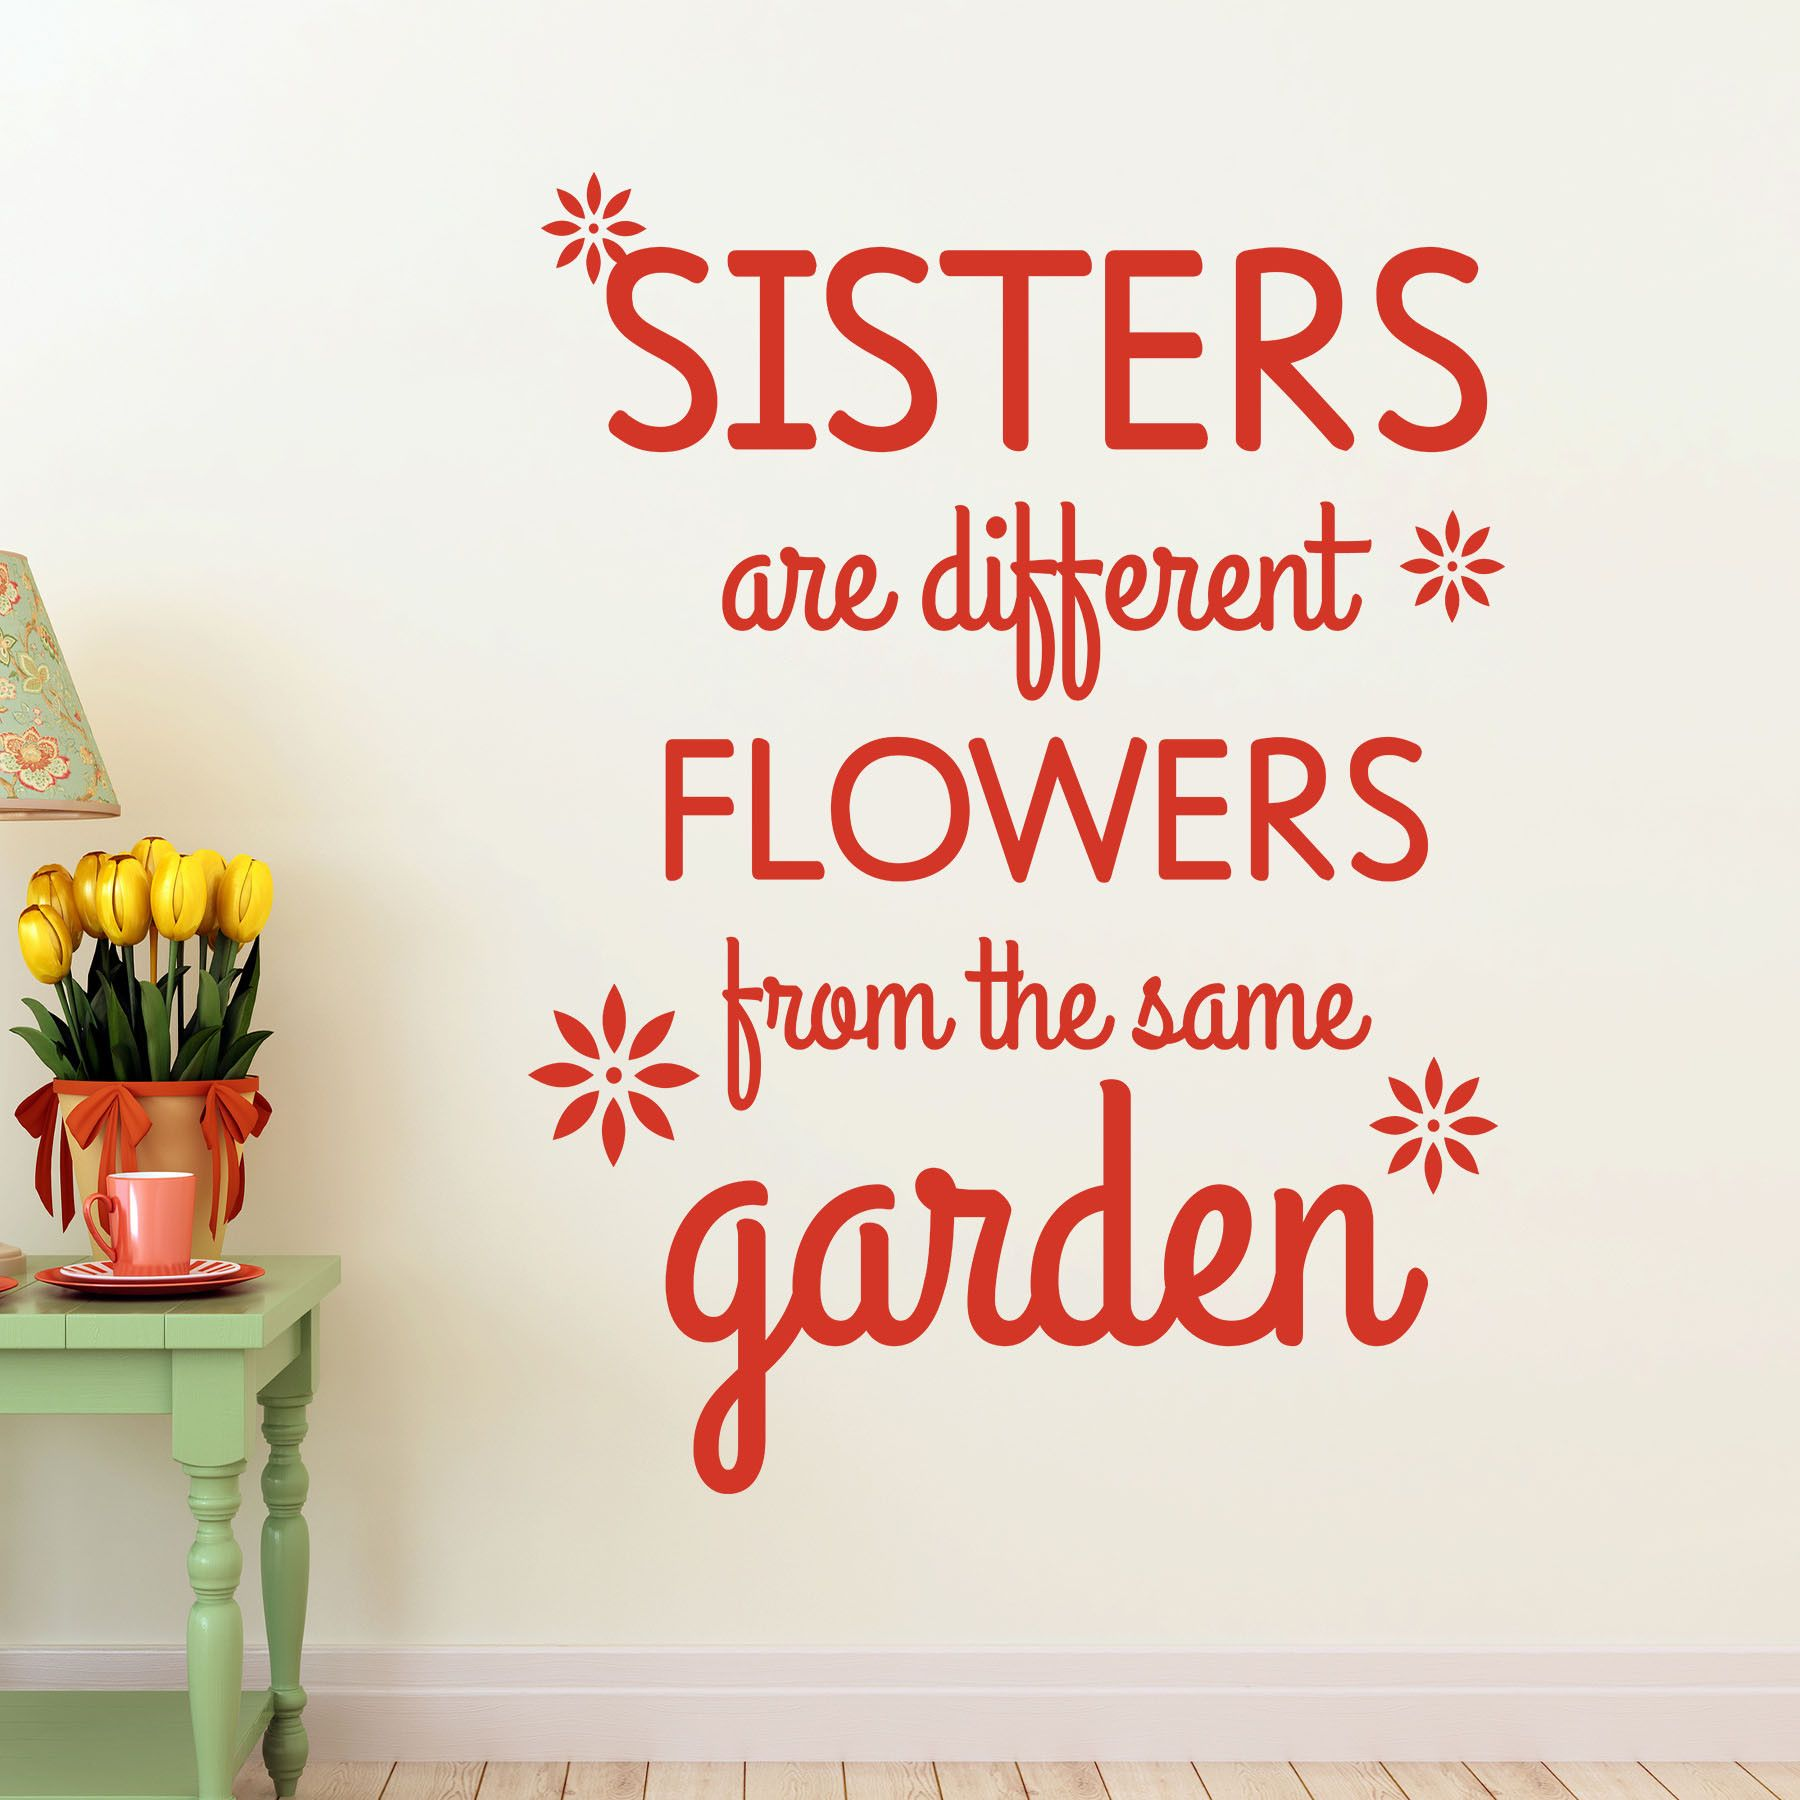 Select Quote Delectable Sisters  Pinterest  Walls Inspirational And Sister Poem